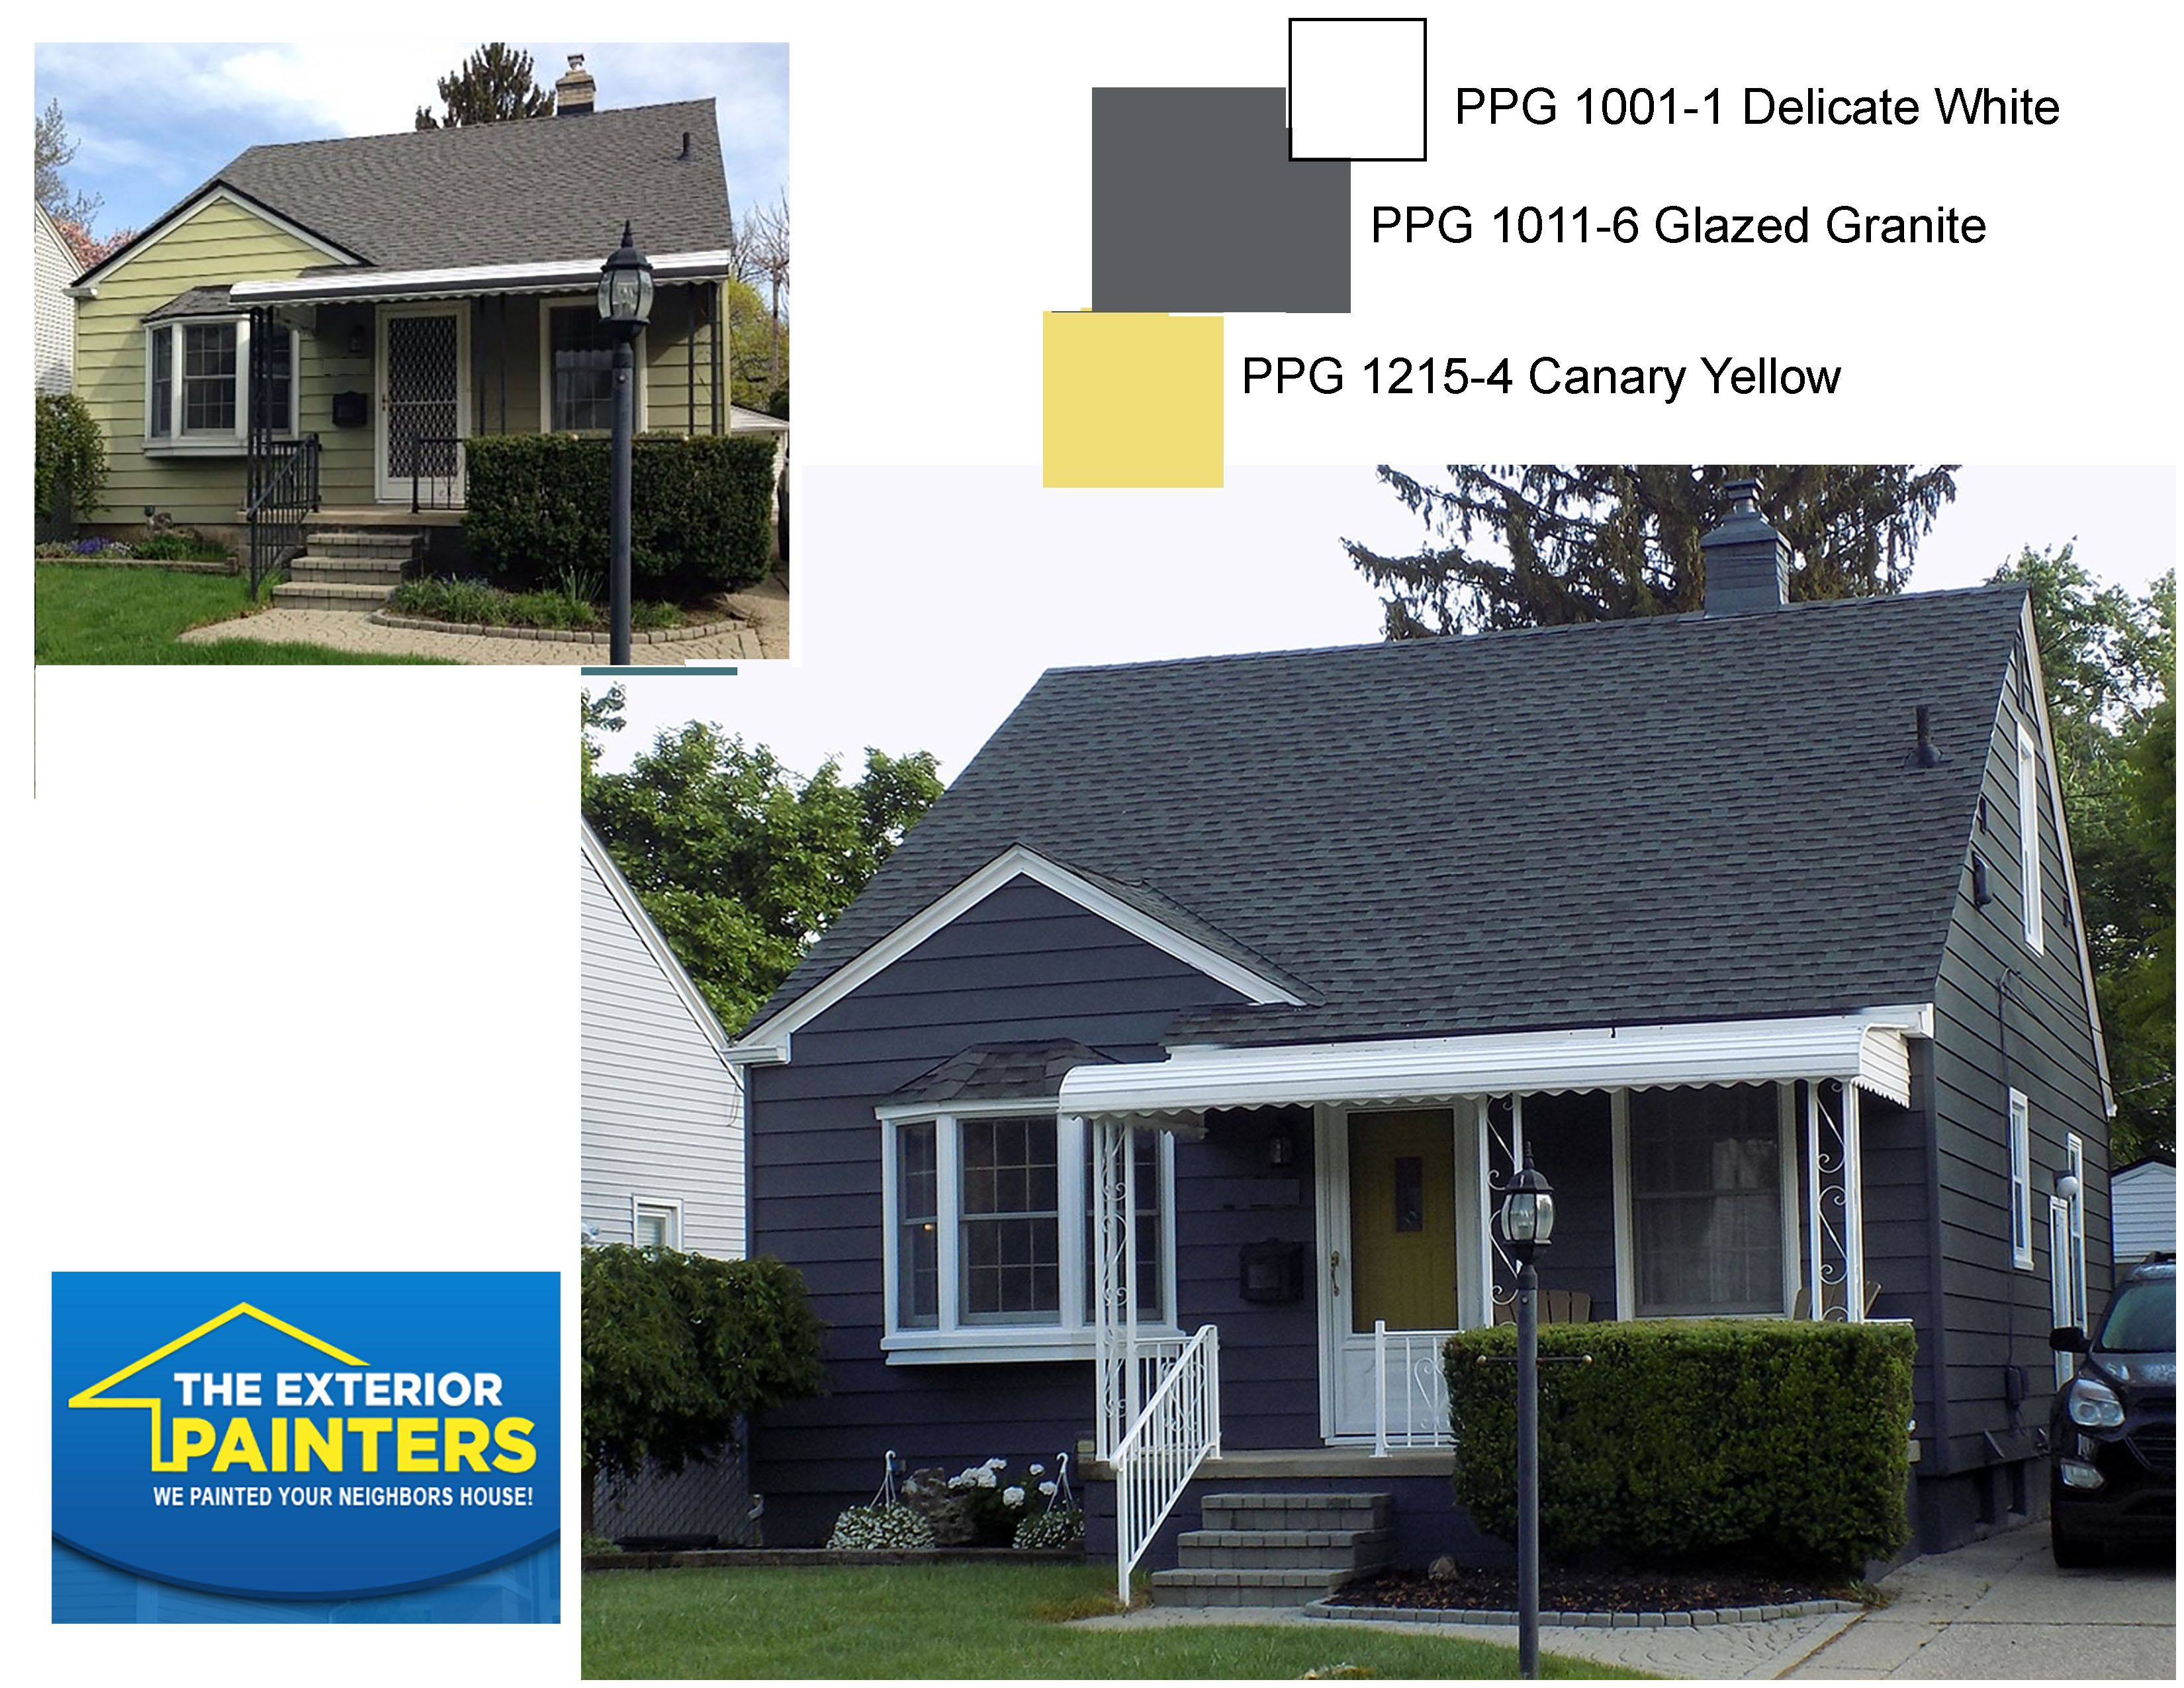 PPG Glazed Granite for siding. PPG Delicate White for trim. PPG Canary Yellow for the front door. & PPG 1011-6 Glazed Granite for siding. PPG 1001-1 Delicate White ... Pezcame.Com